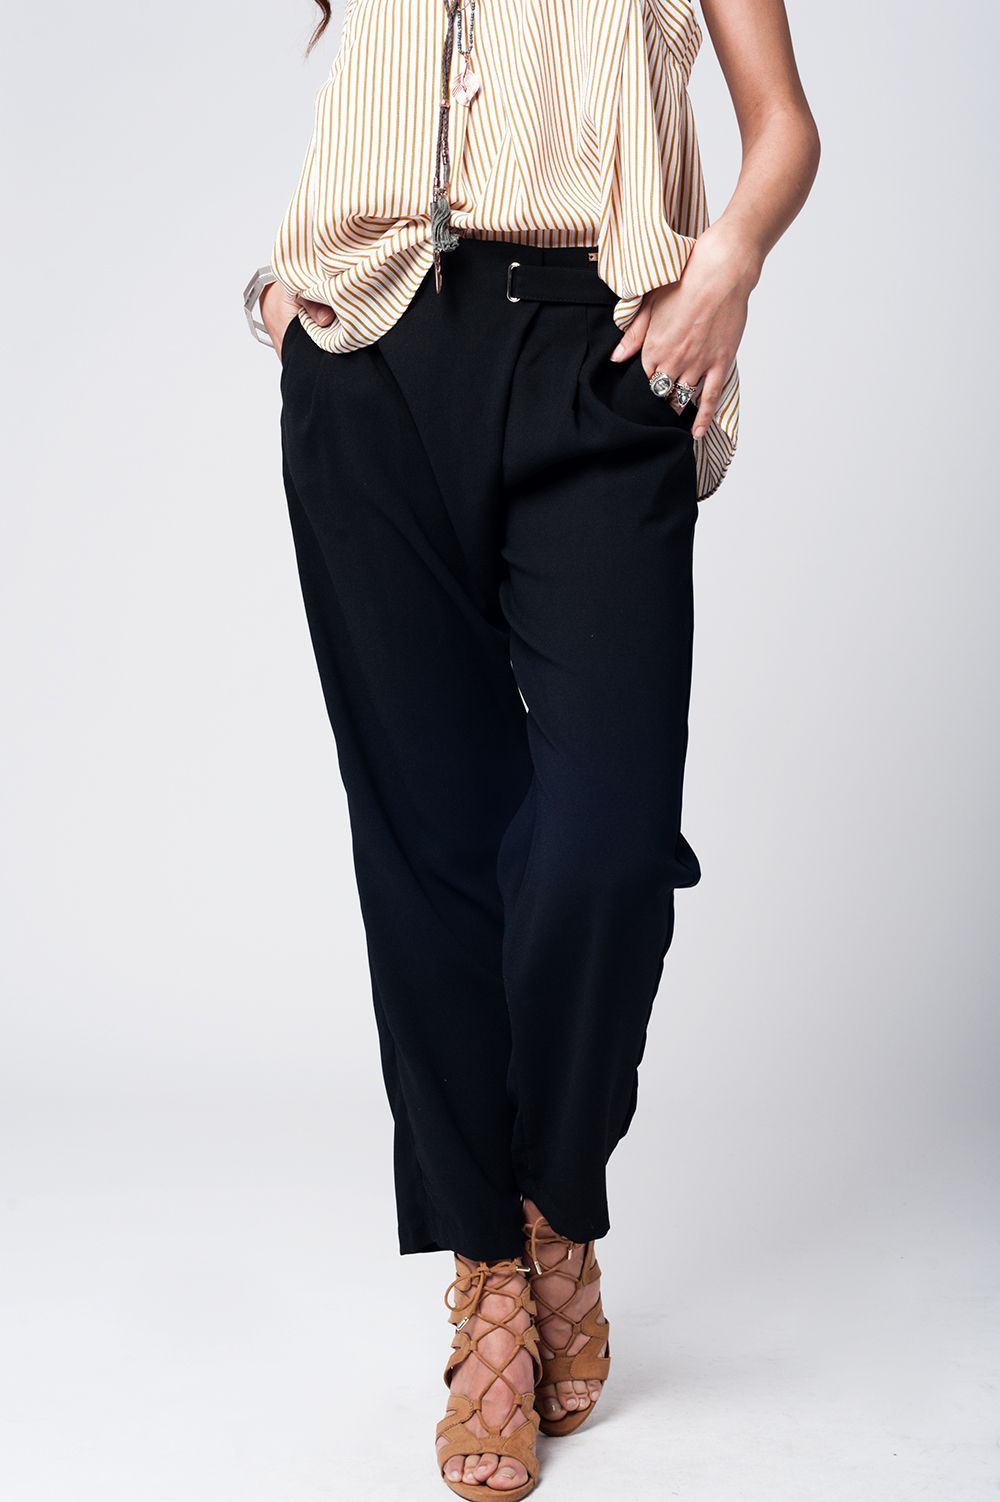 Q2 Black wide leg trousers with waist detail